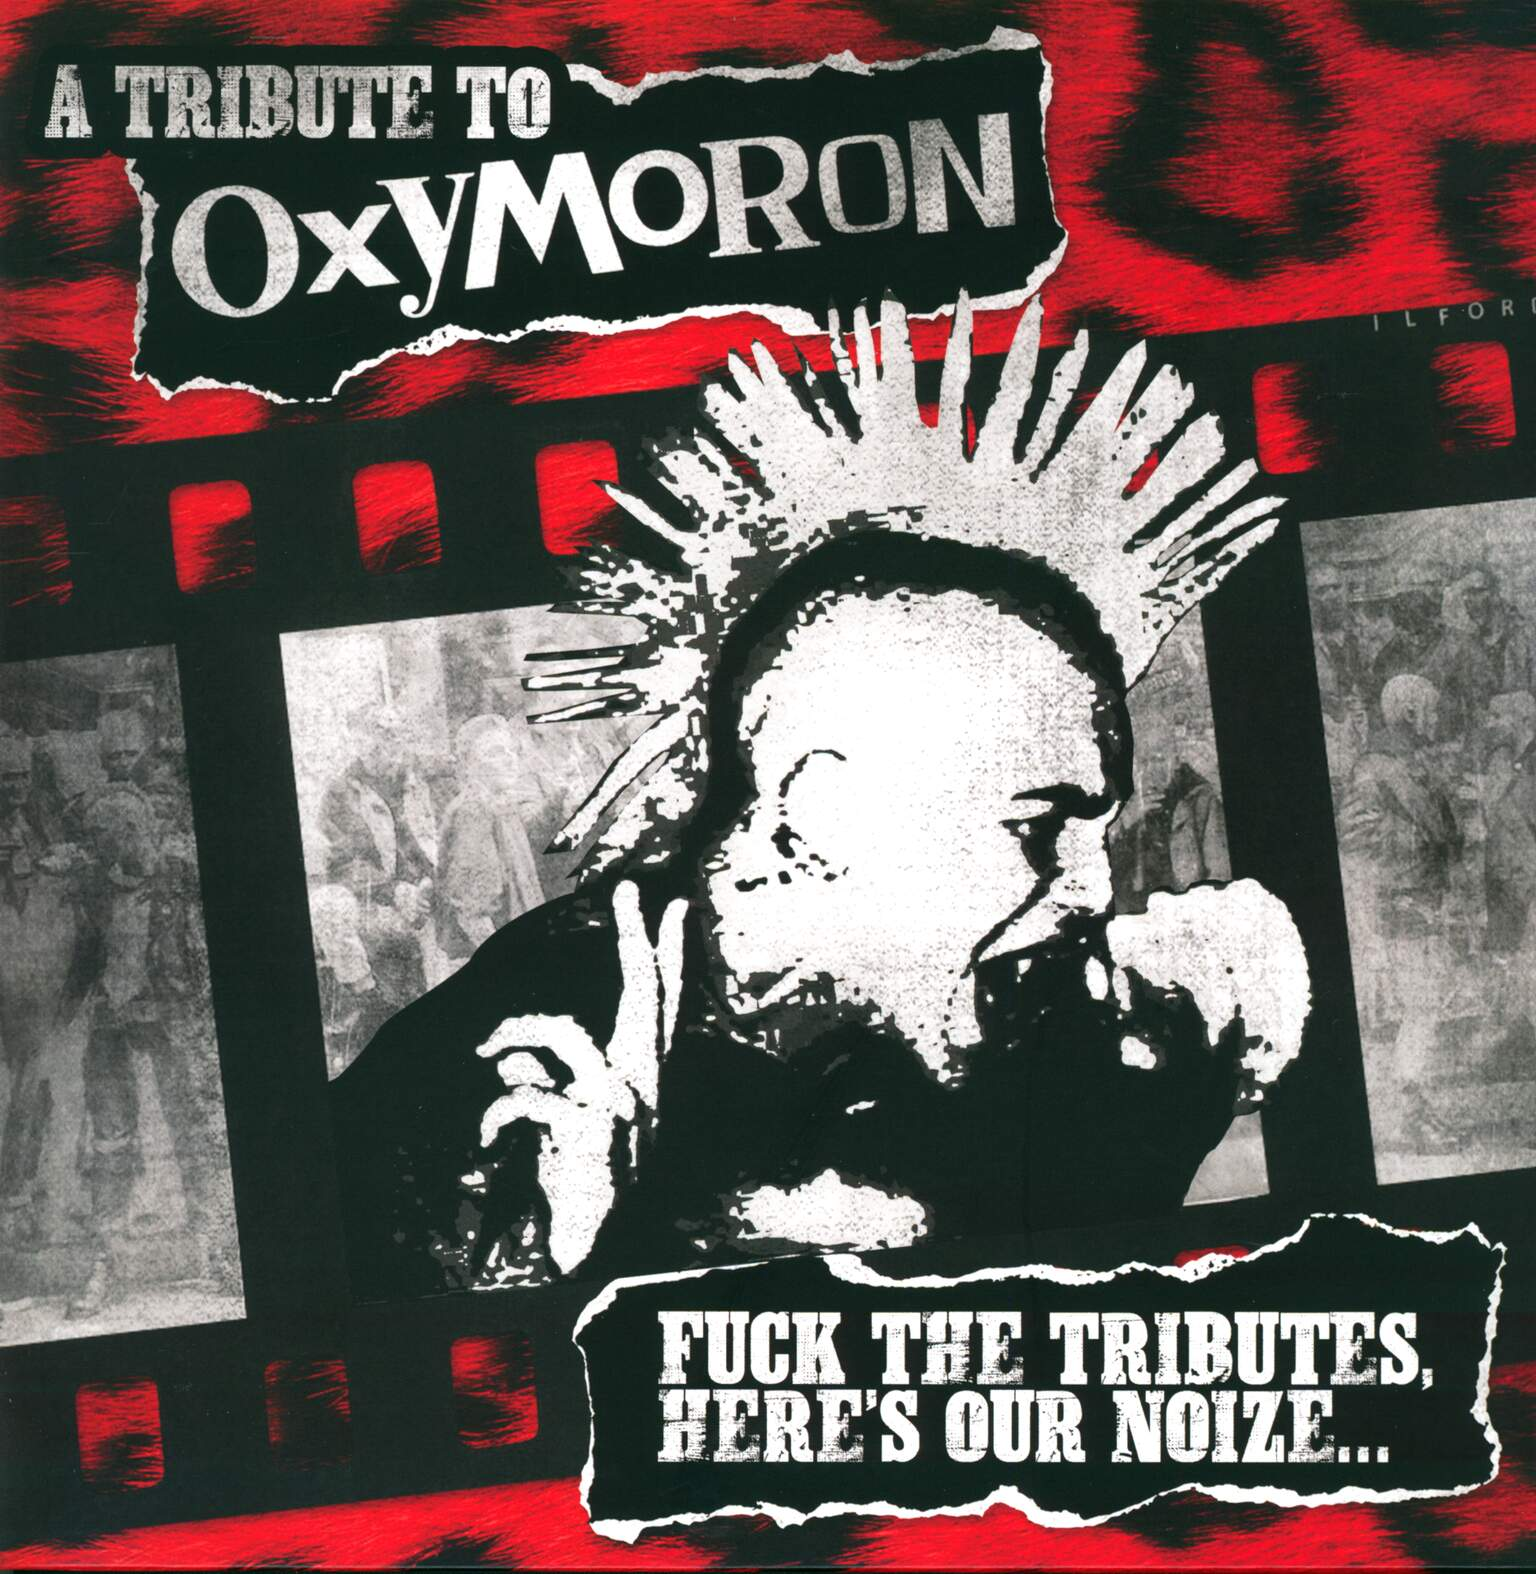 Various: A Tribute To Oxymoron - Fuck The Tributes, Here's Our Noize..., 1×LP (Vinyl)